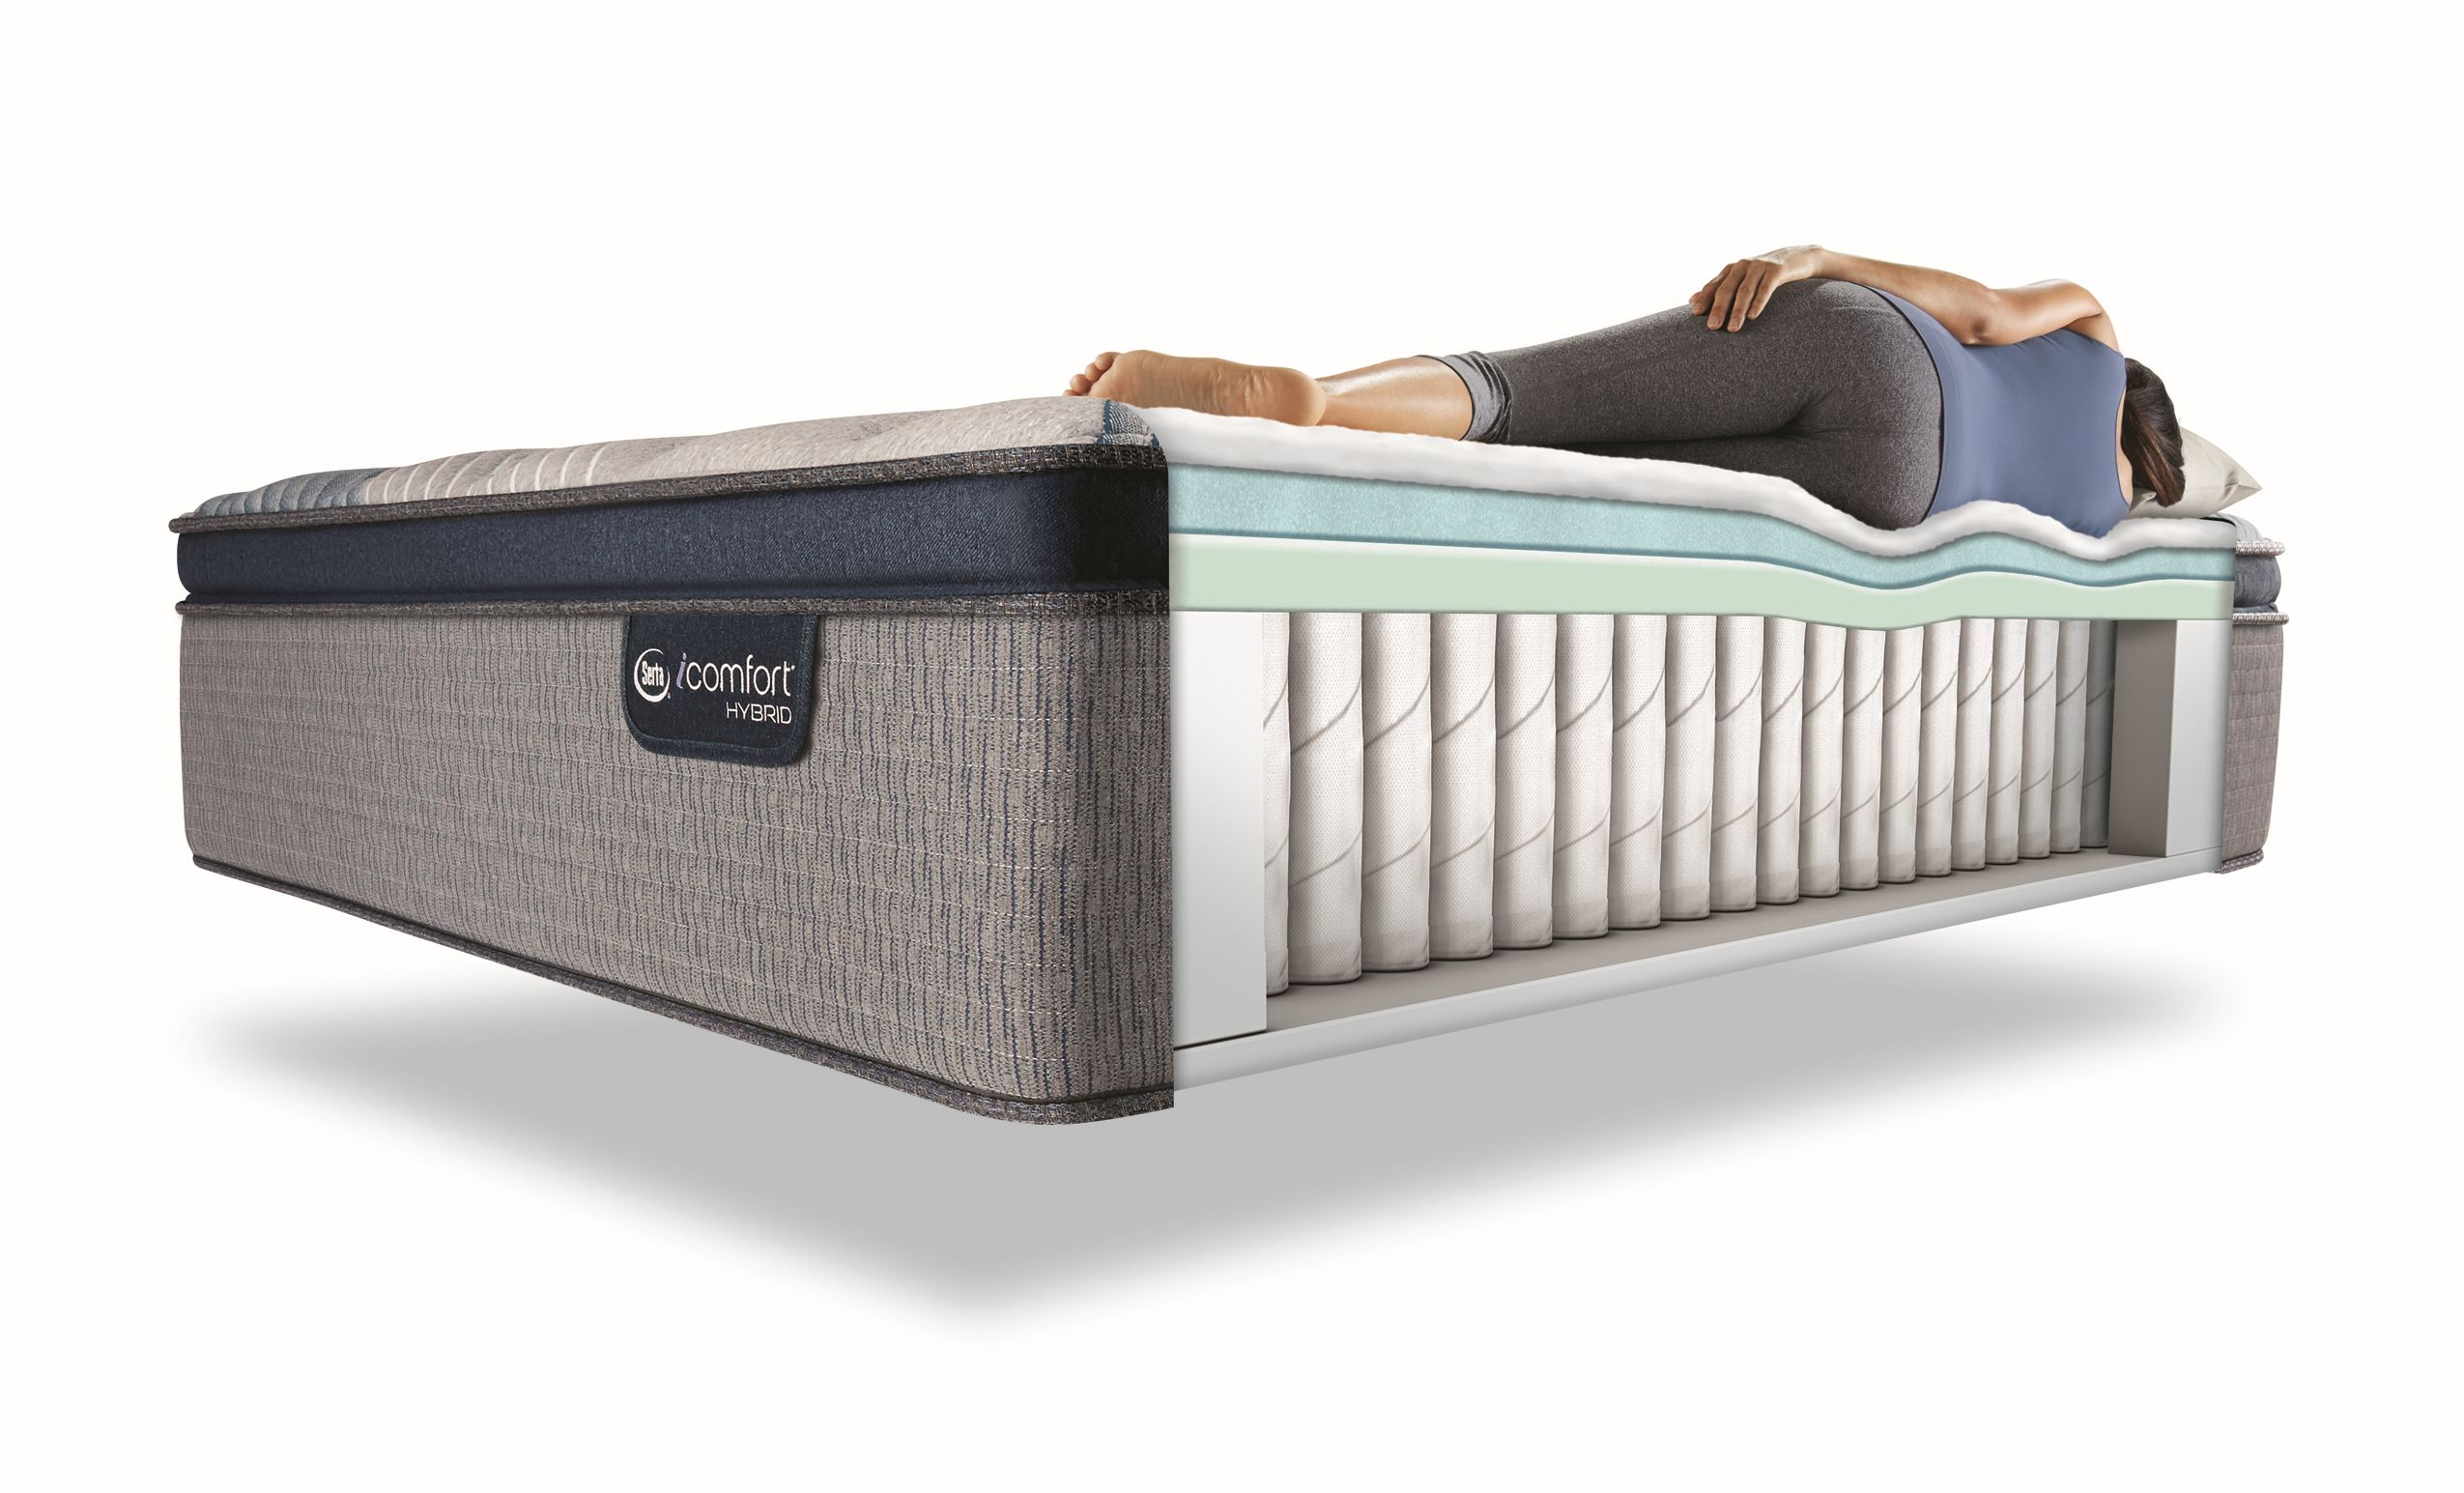 Serta Icomfort Hybrid Blue Fusion 1000 Plush Pillowtop Mattress Reviews Goodbed Com